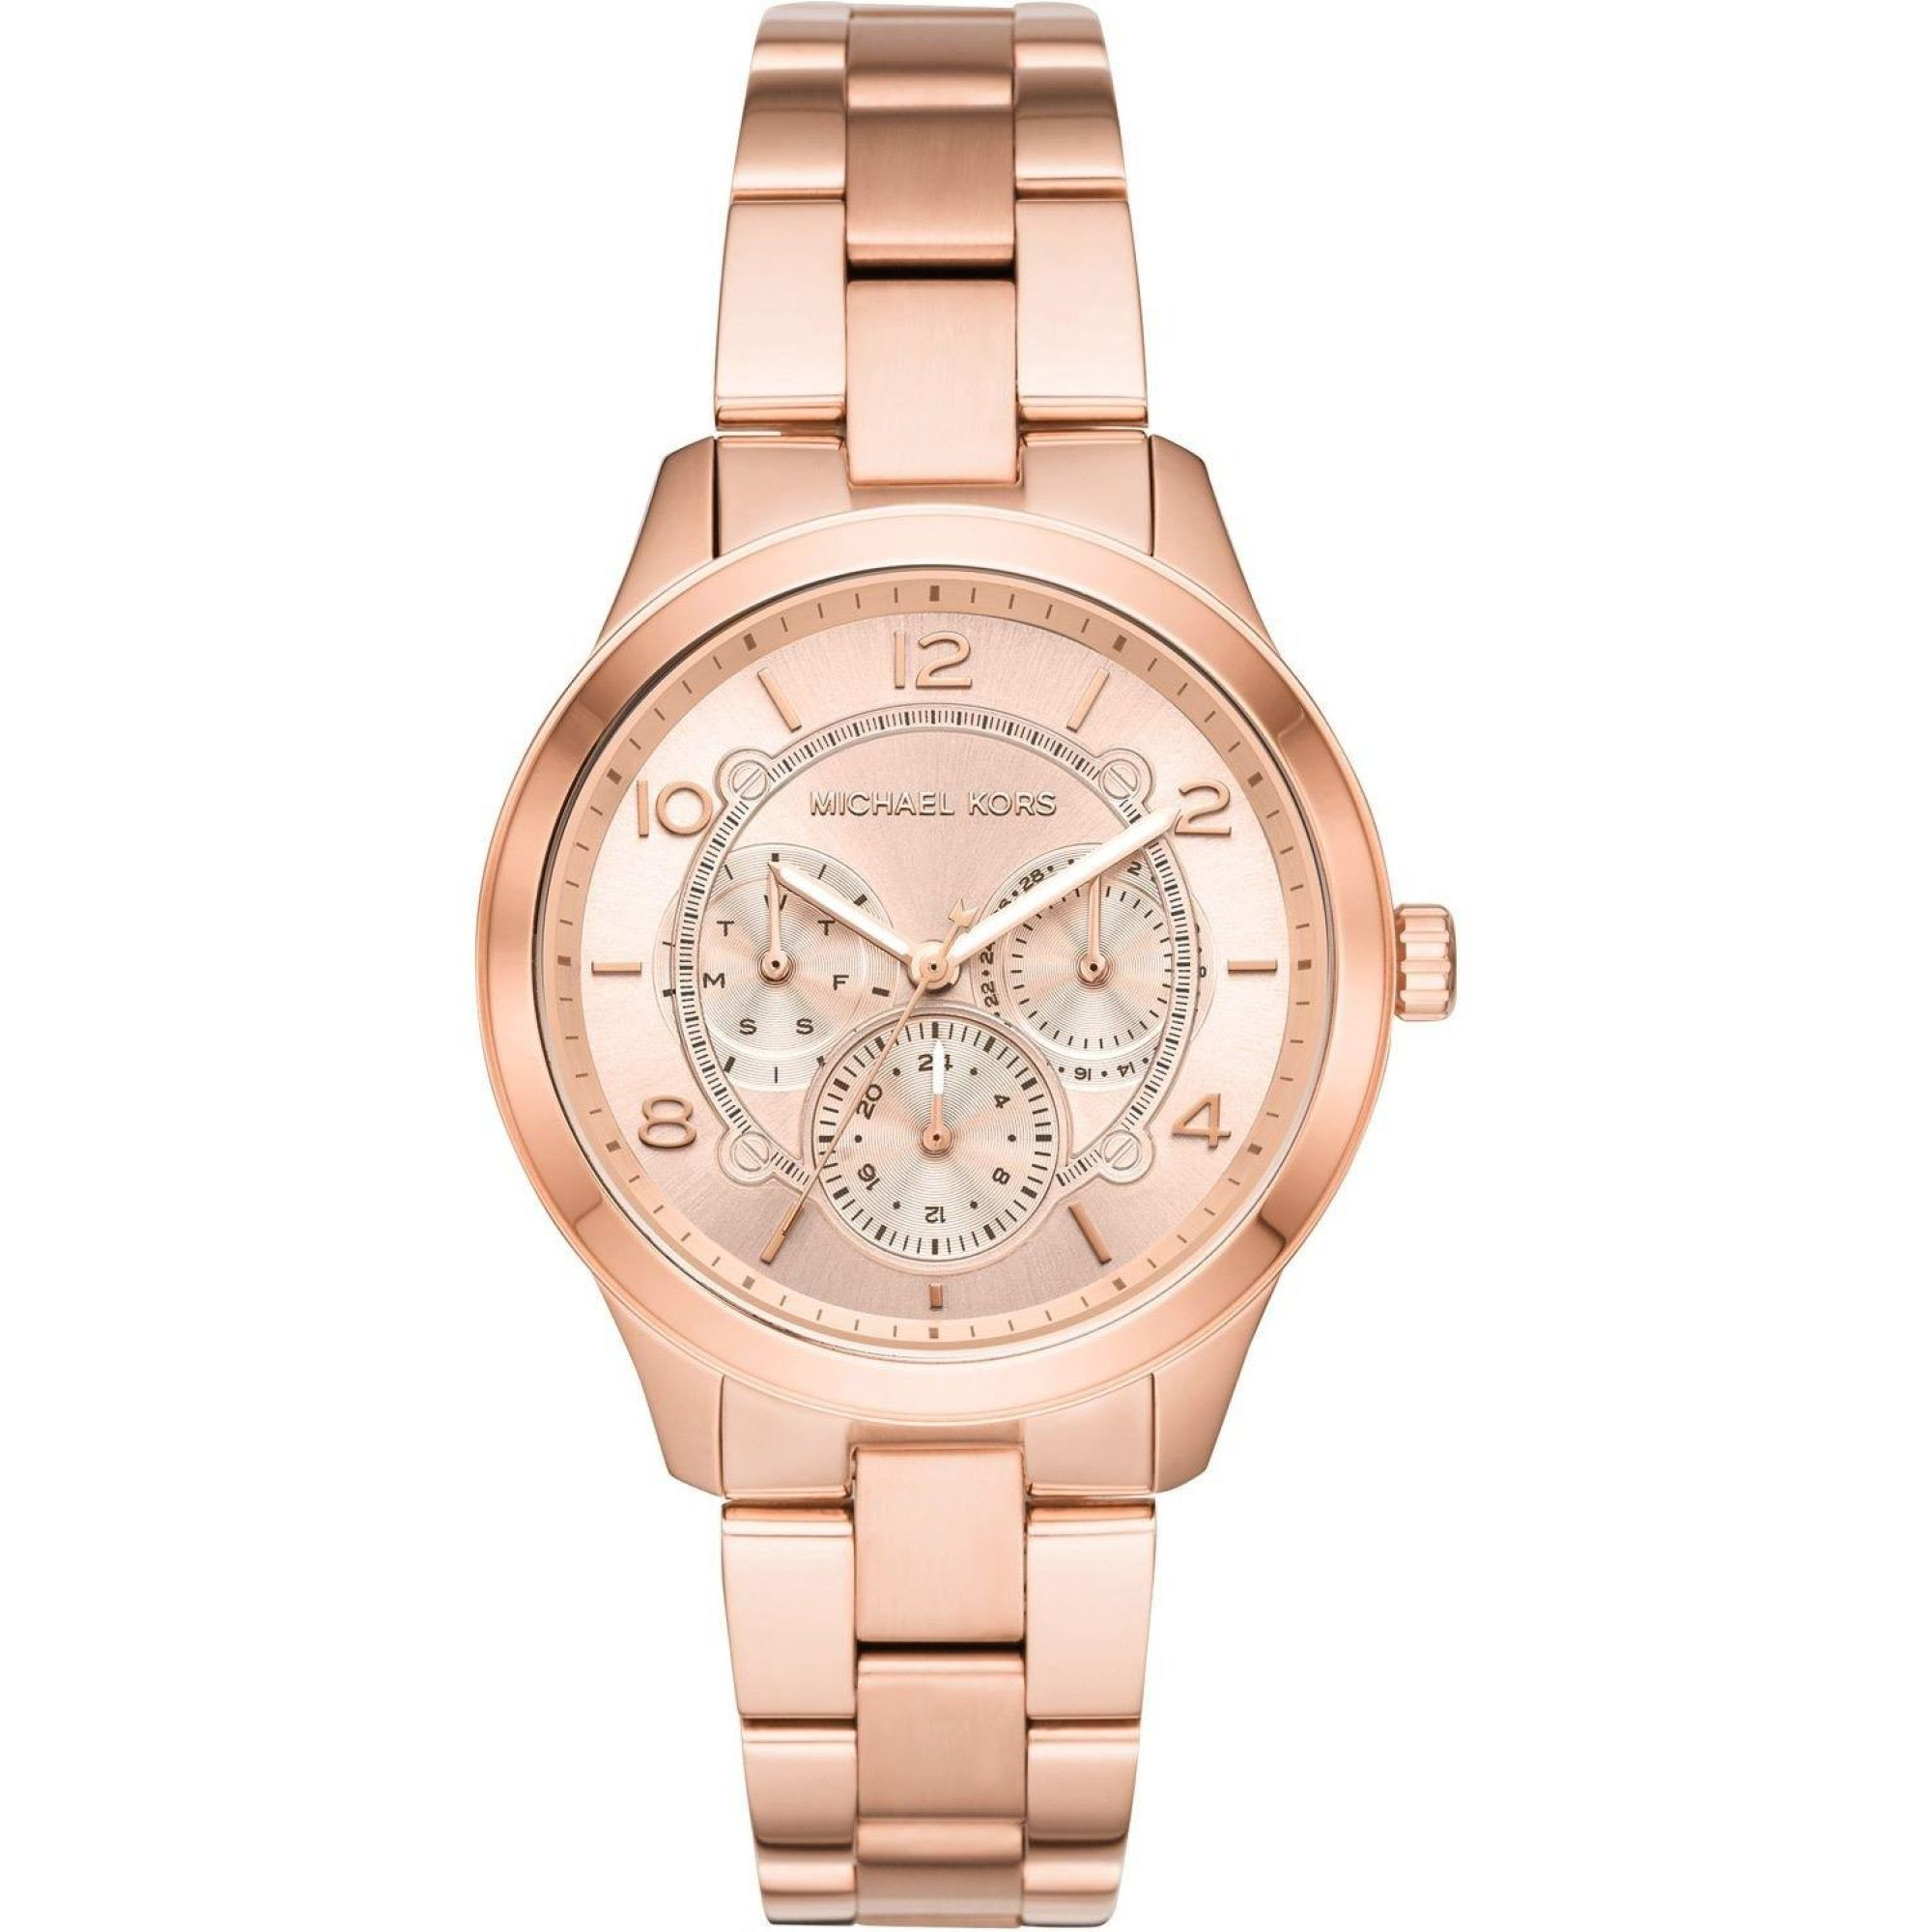 Michael Kors Rose Gold Stainless Steal MK6589